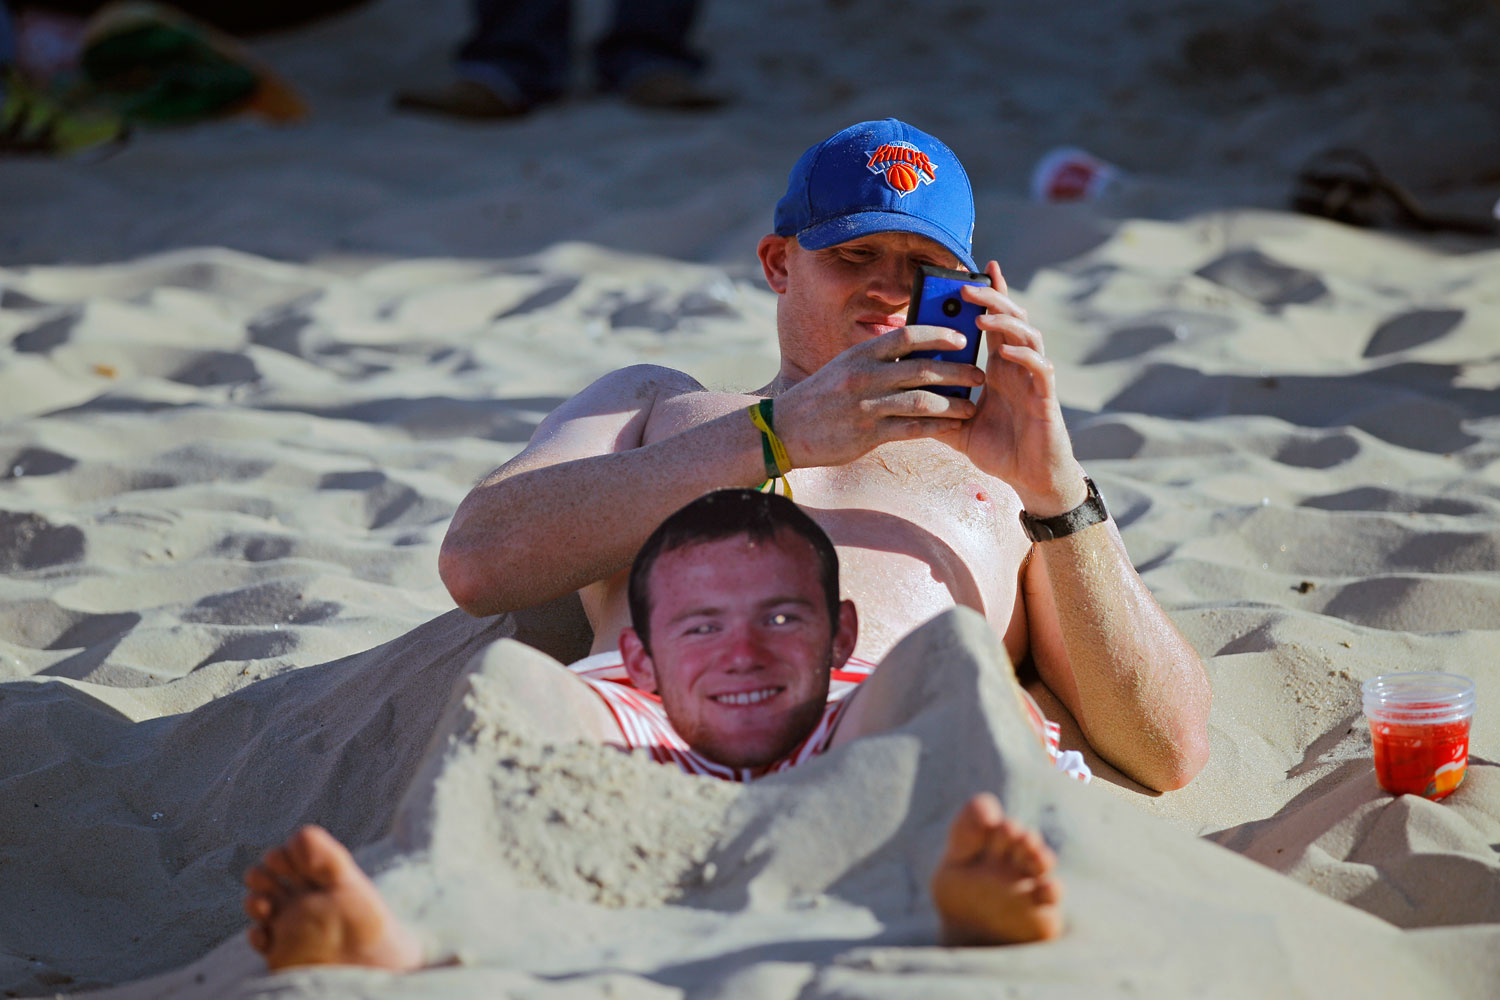 An England fan lies on the sand of Copacabana beach with a mask of English soccer star Wayne Rooney between his legs, in Rio de Janeiro on June 14, 2014.